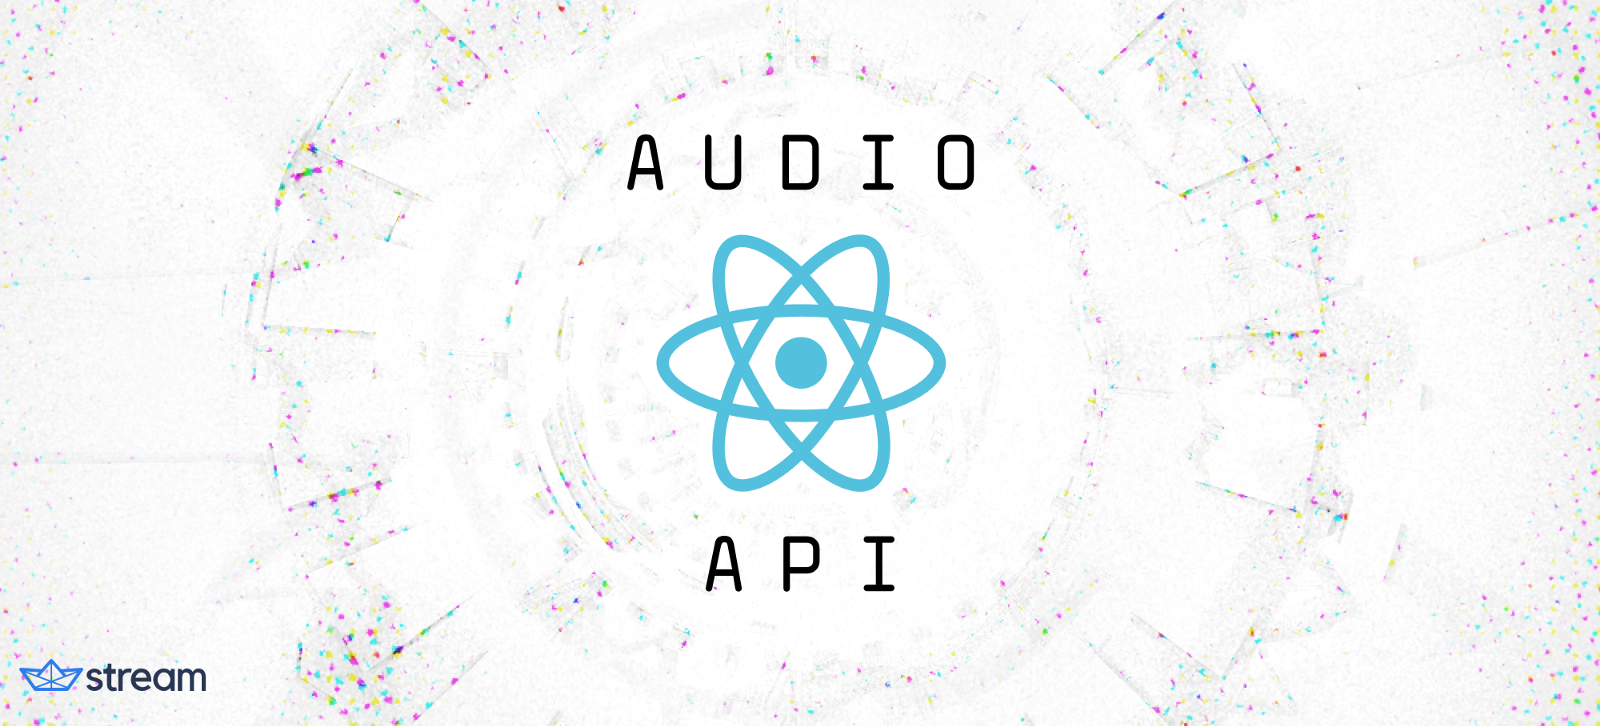 /experimenting-with-react-native-expos-audio-api-6f13eeb729be feature image